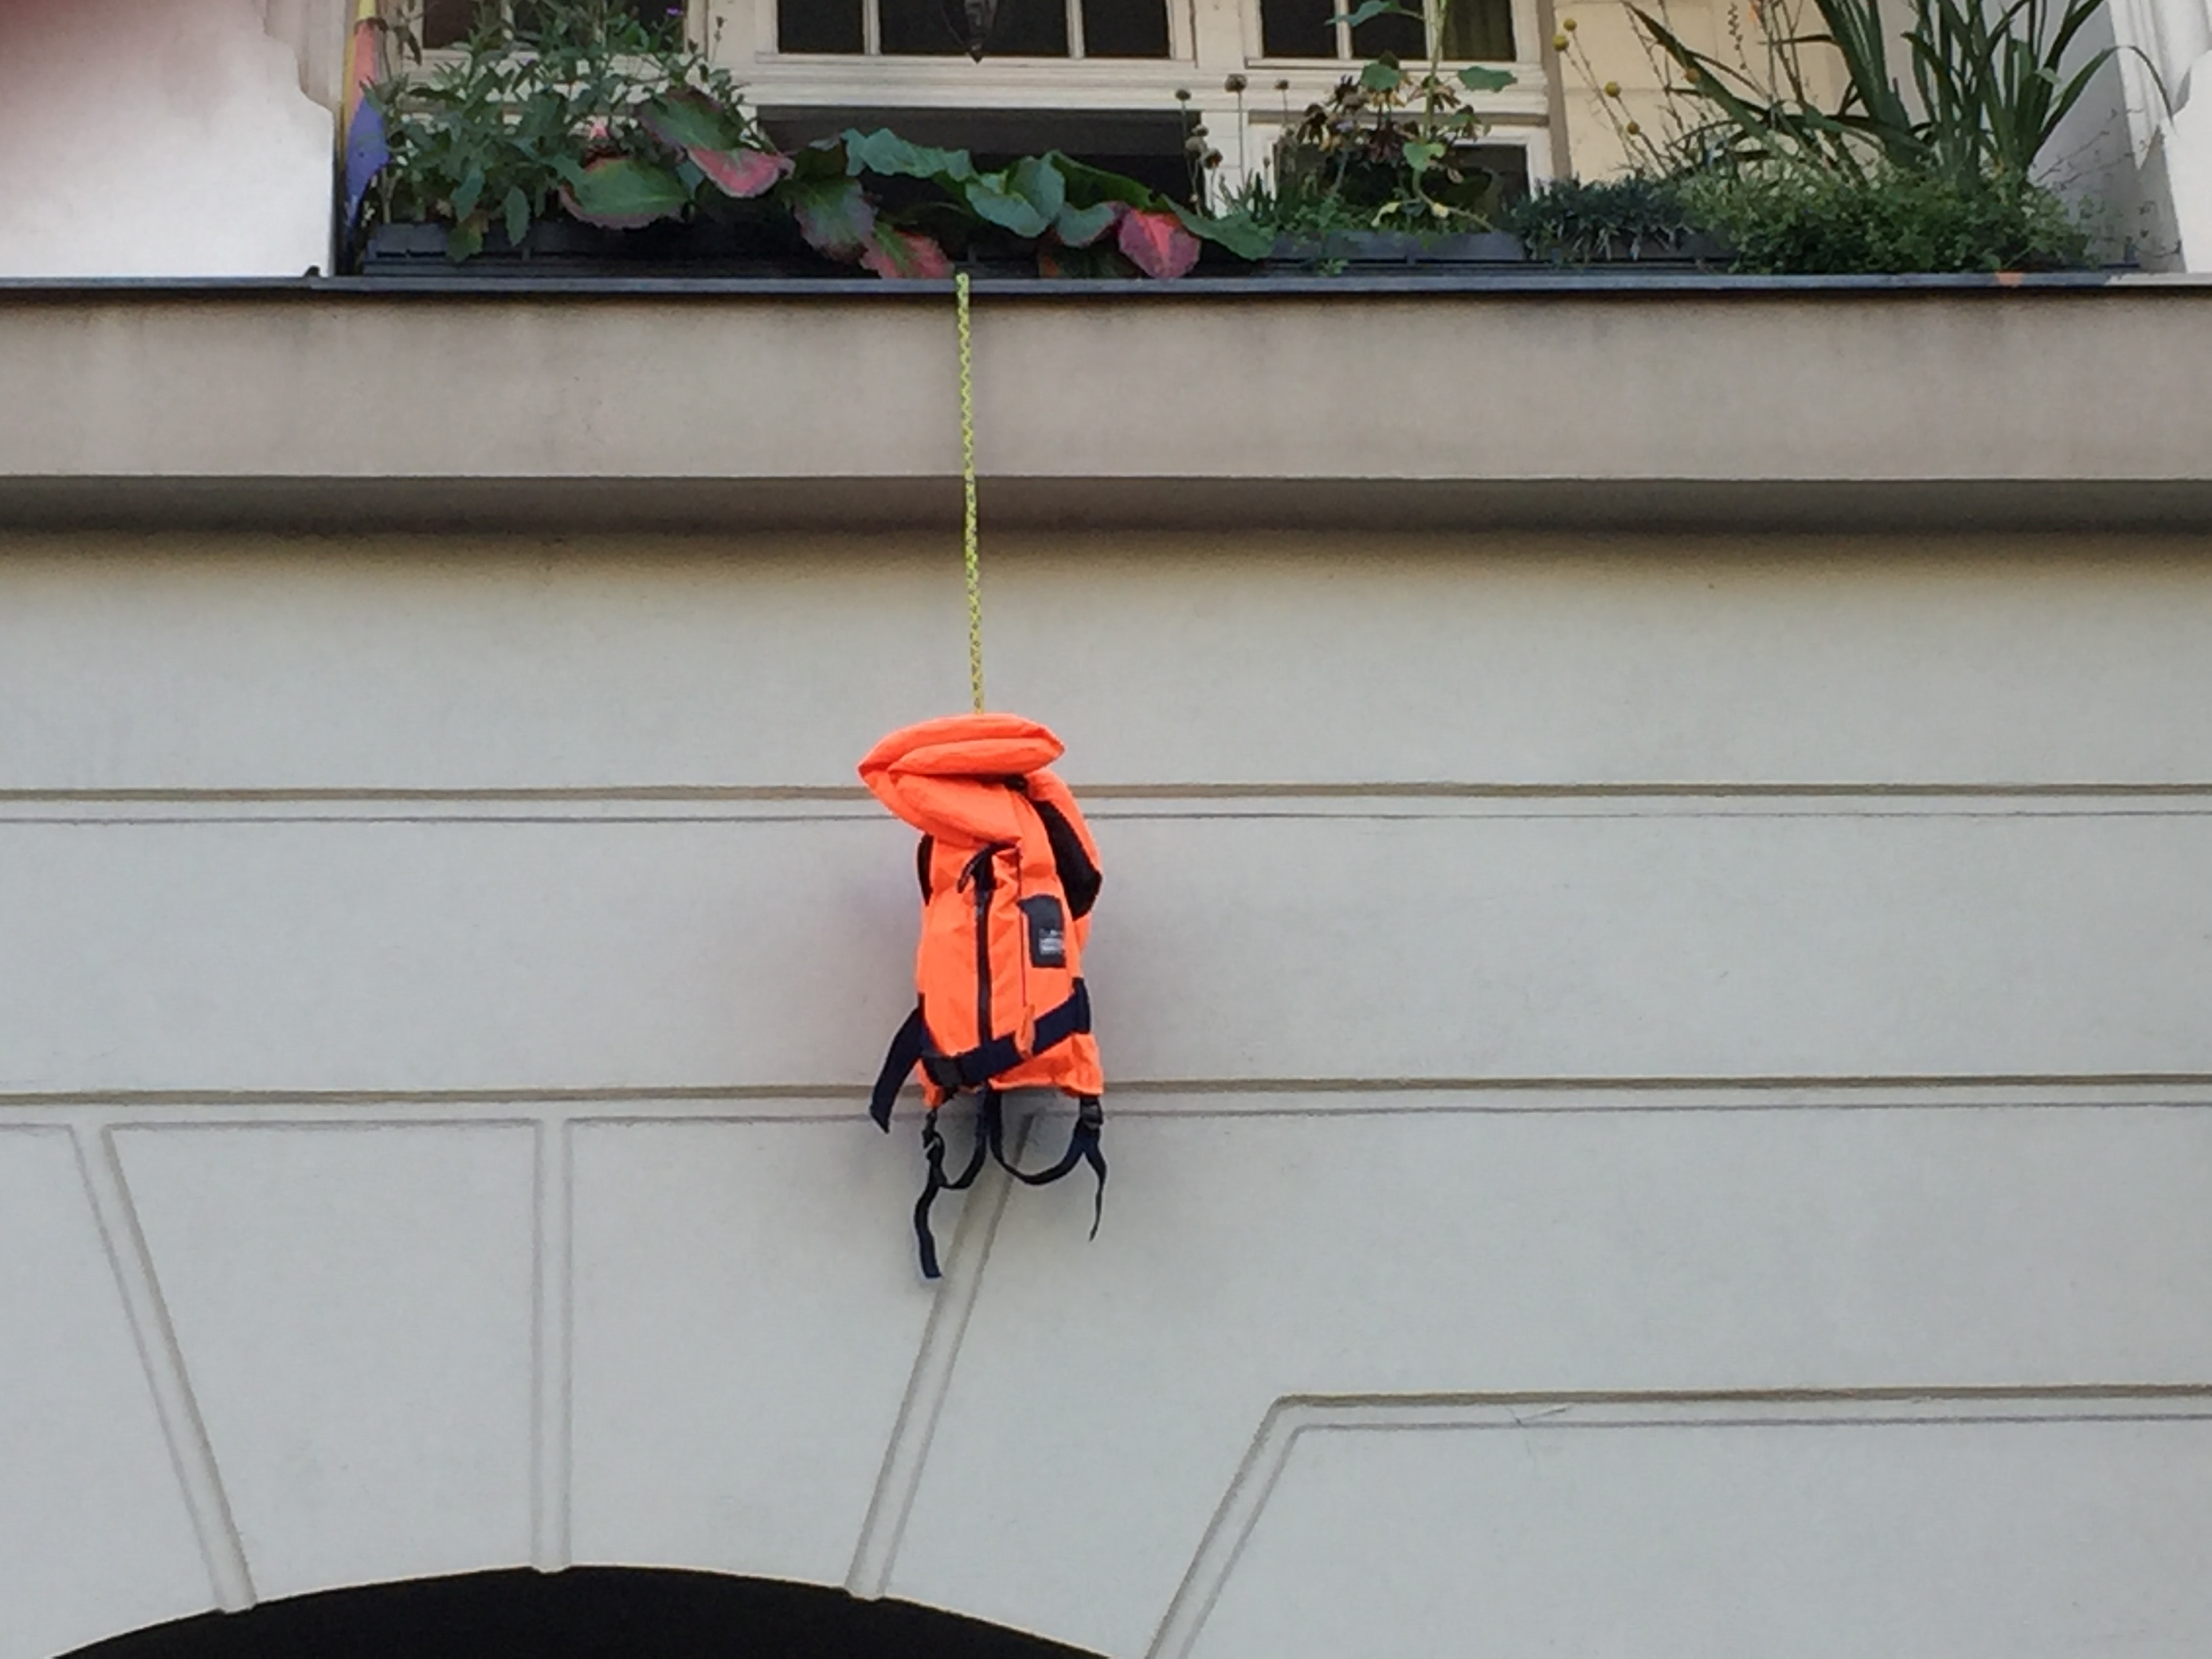 A life vest hangs lifelessly from a balcony in Berlin-Kreuzberg, a stark reminder of all the many people who have been forced to use such vests in sea crossing attempts, who either reached their destination or died or were turned back in trying.